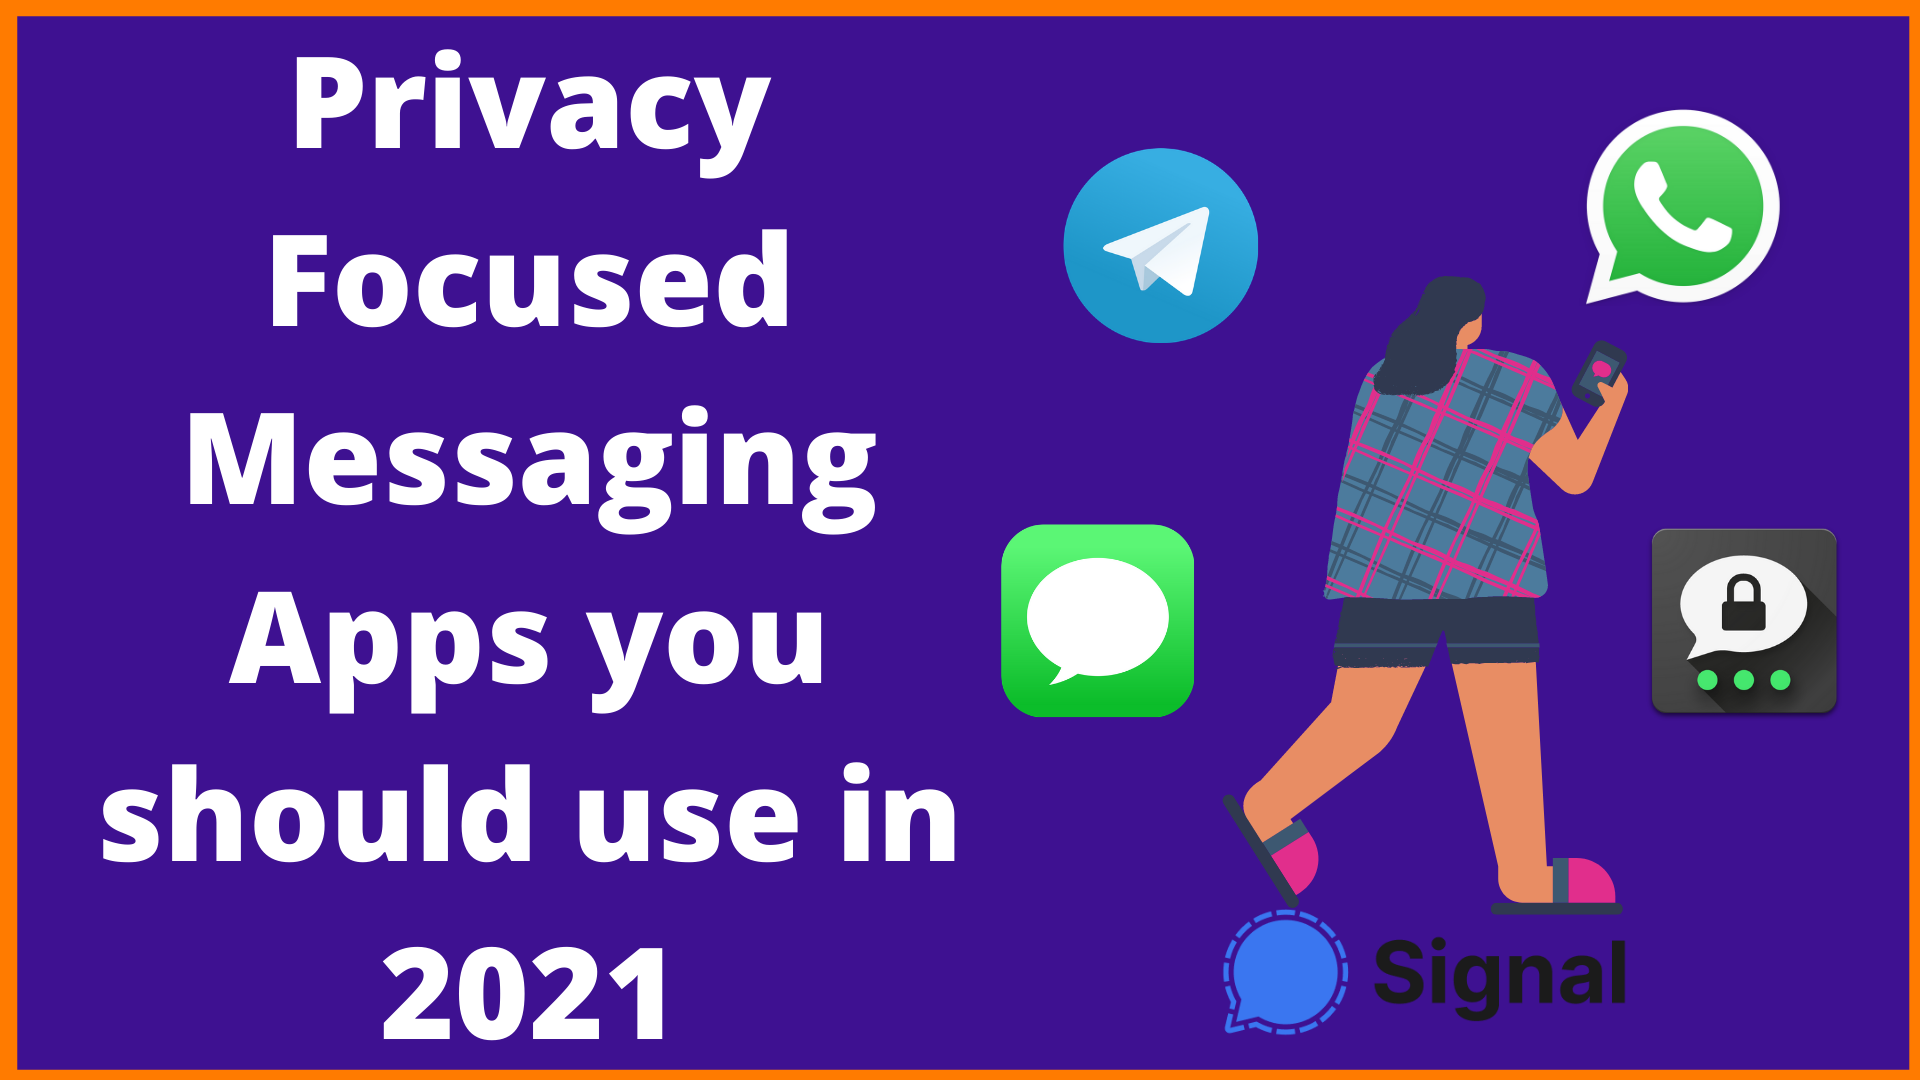 Privacy Focused Messaging Apps you should use in 2021